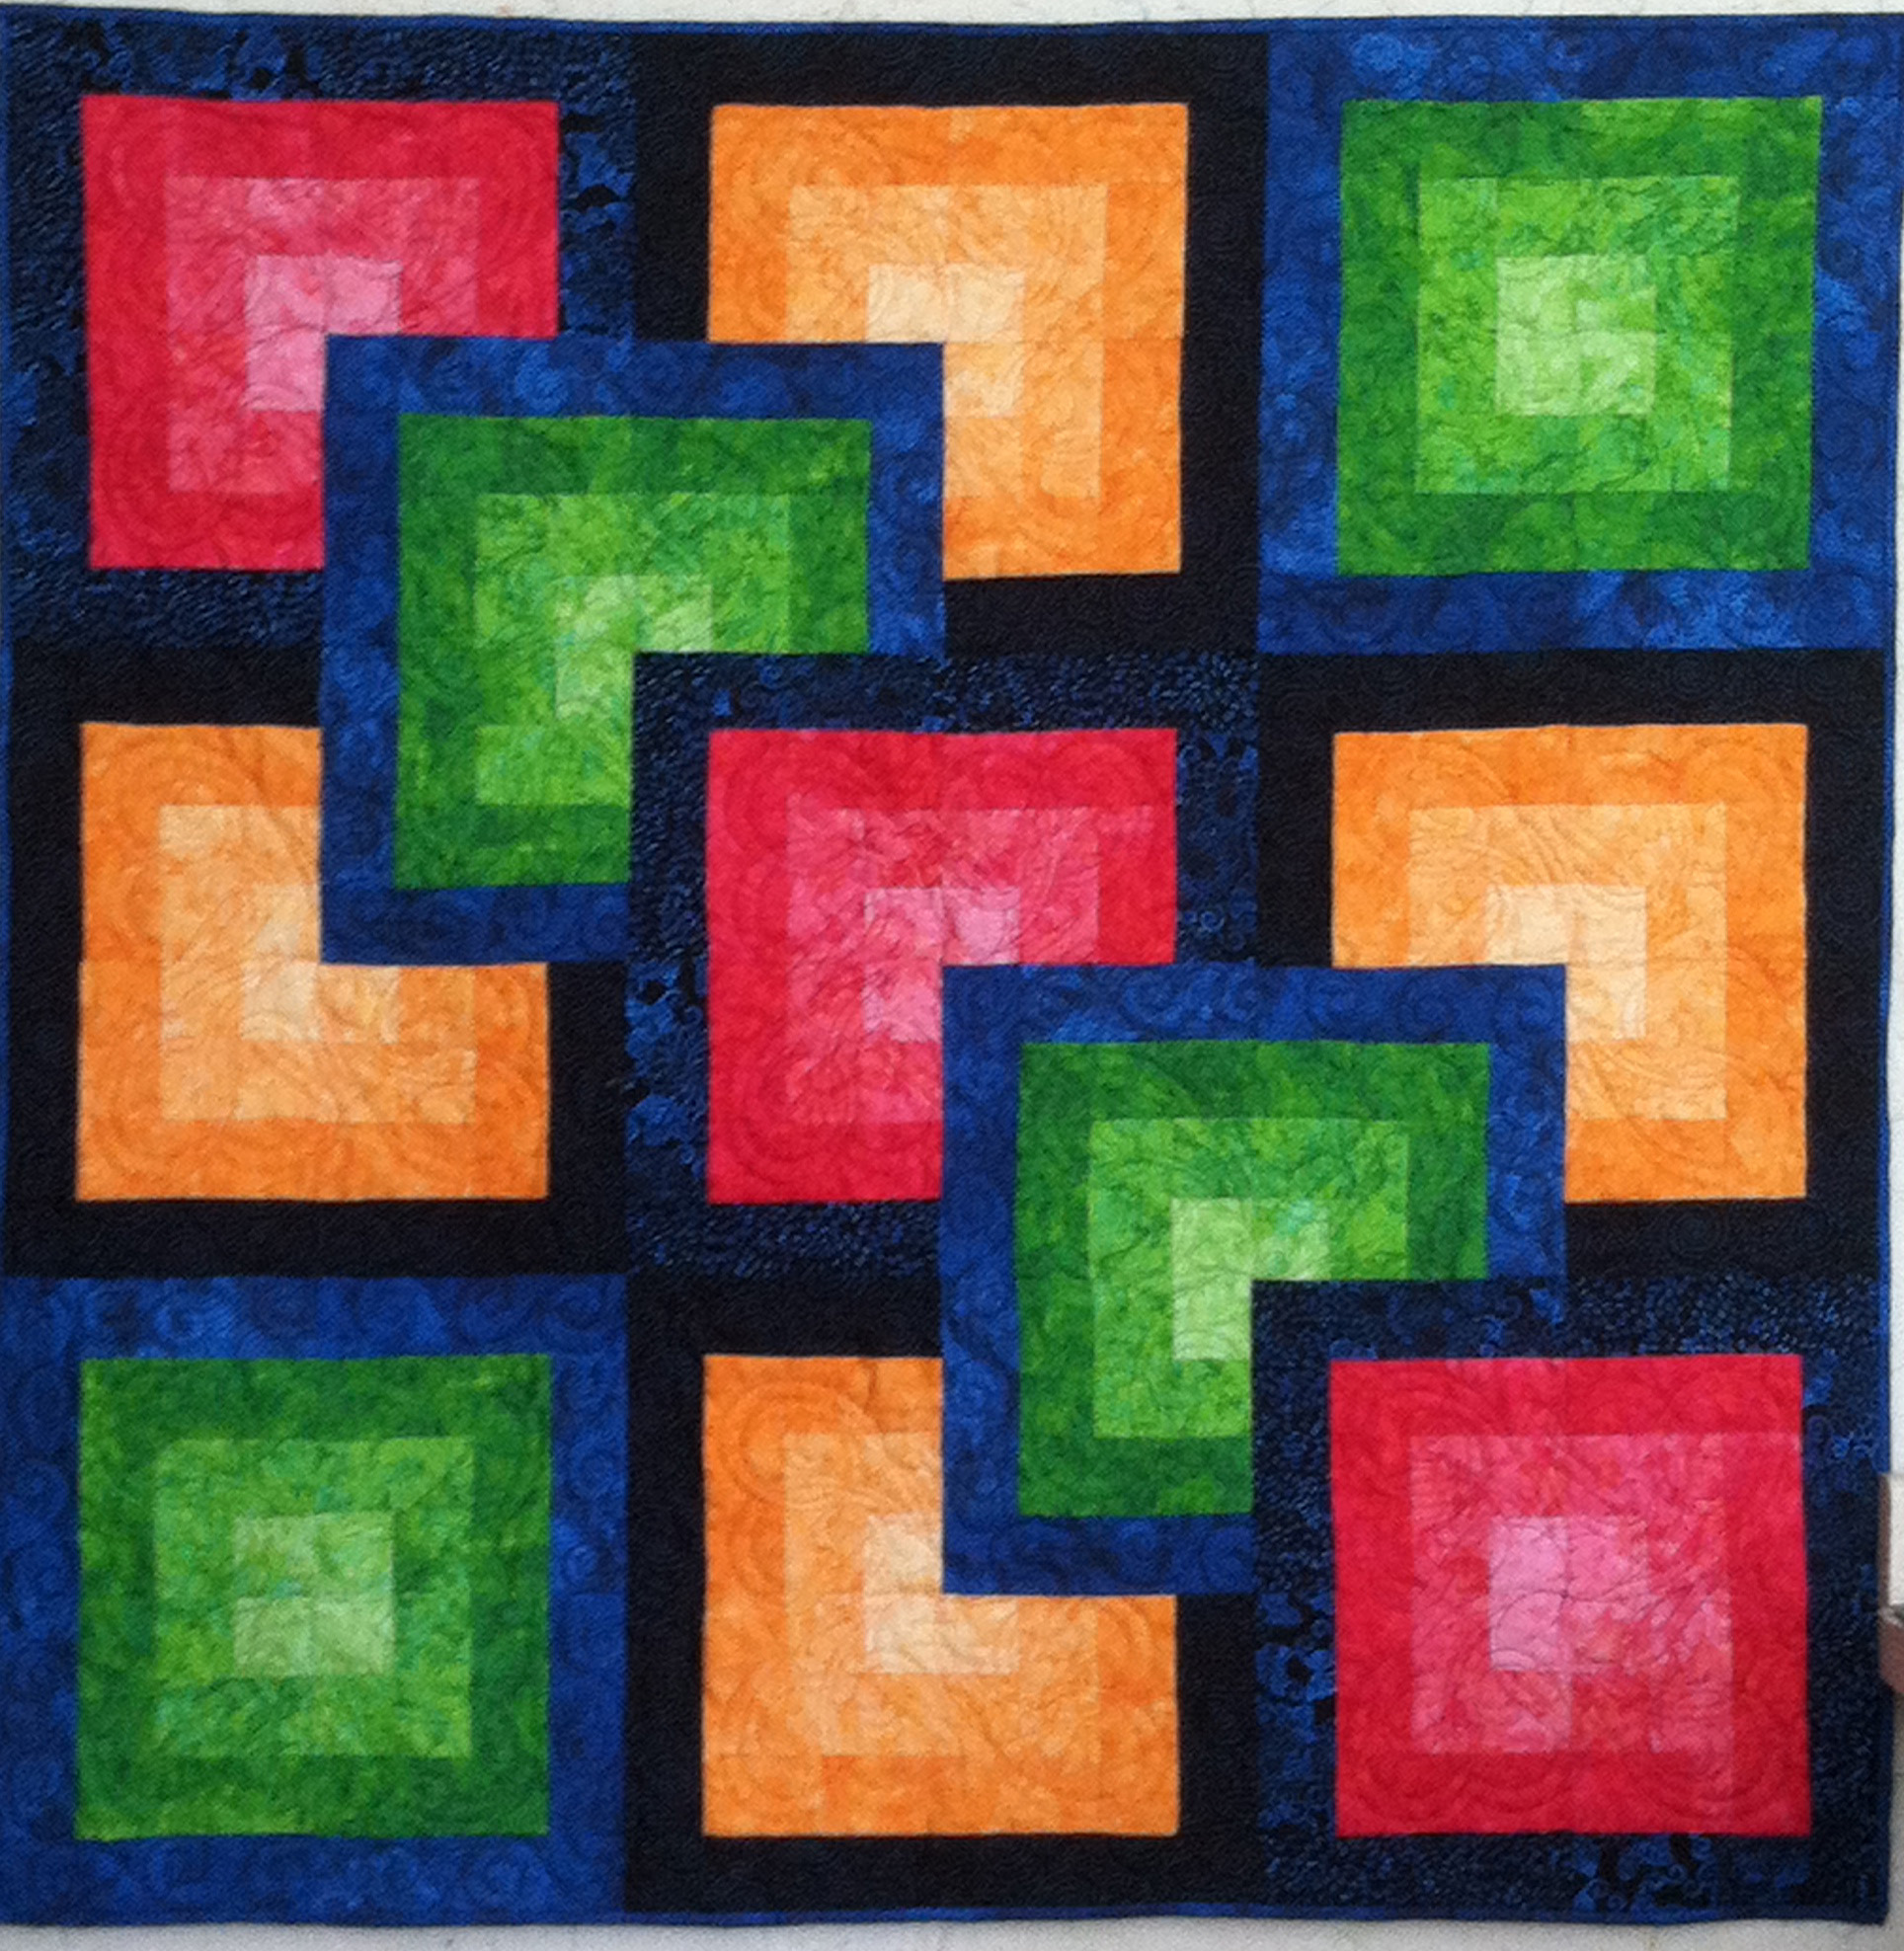 Illusion Quilt Patterns Pictures To Pin On Pinterest